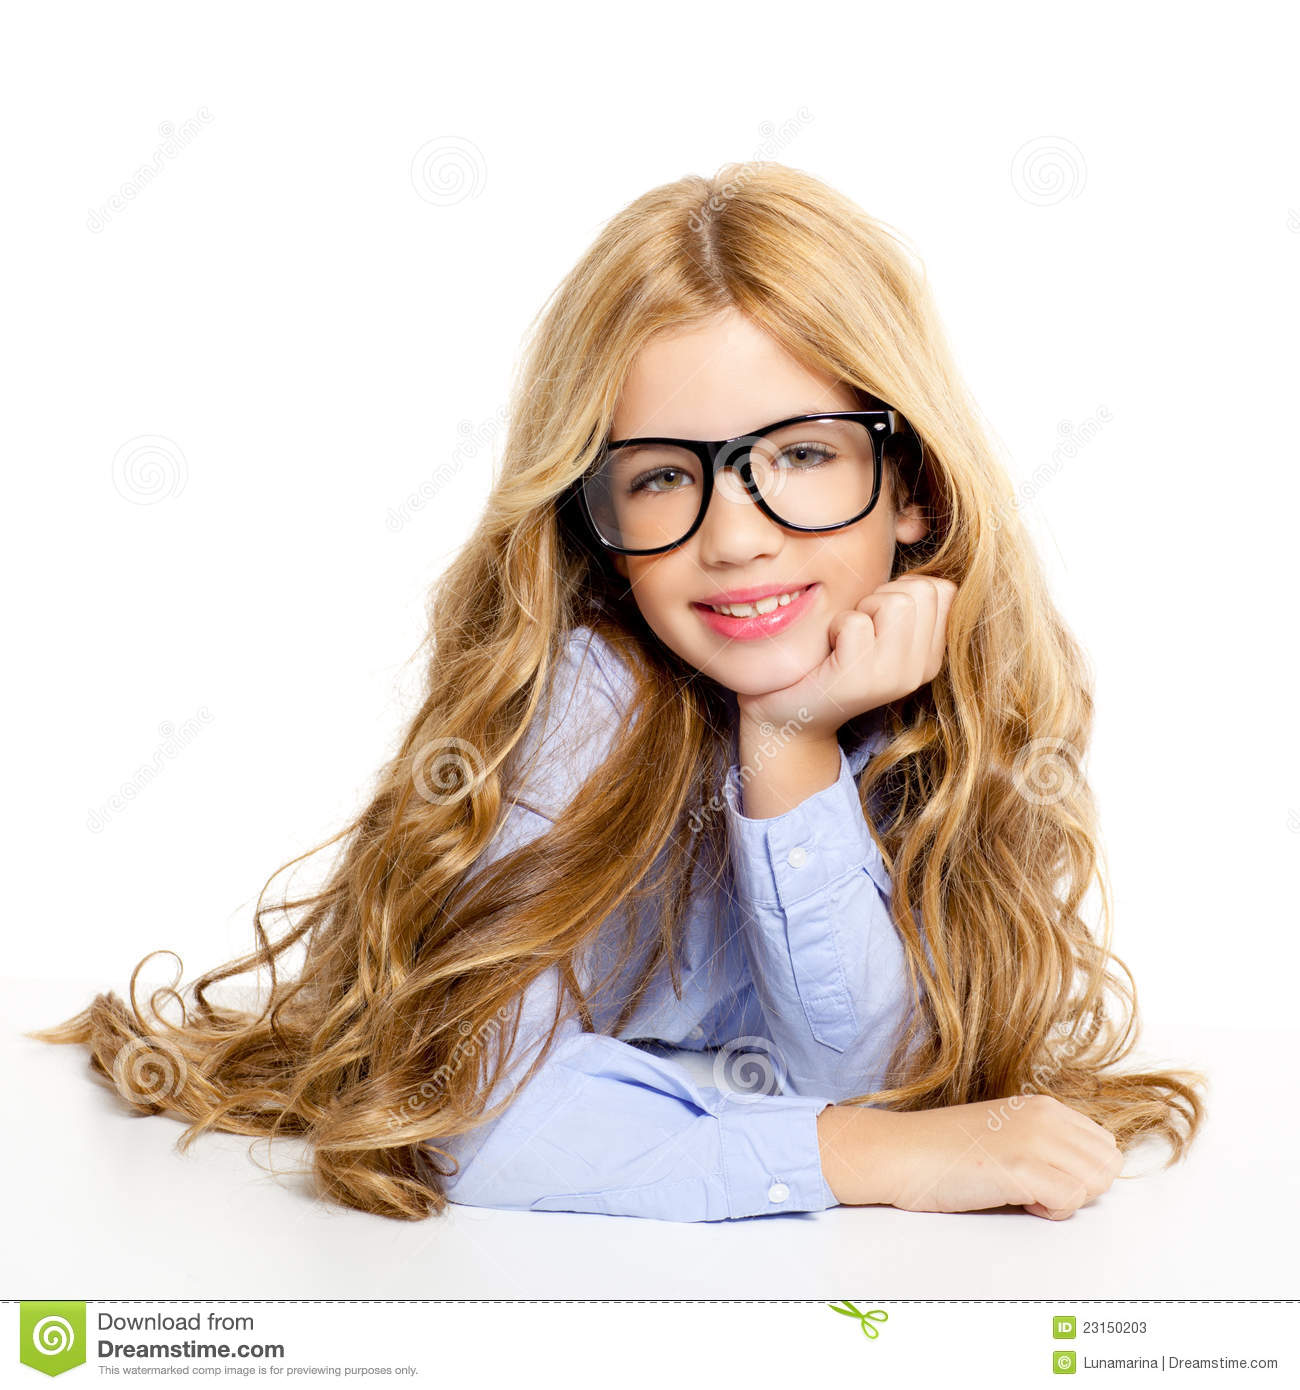 Blond Fashion Kid Girl With Glasses Portrait Stock Photos - Image 23150203-4217